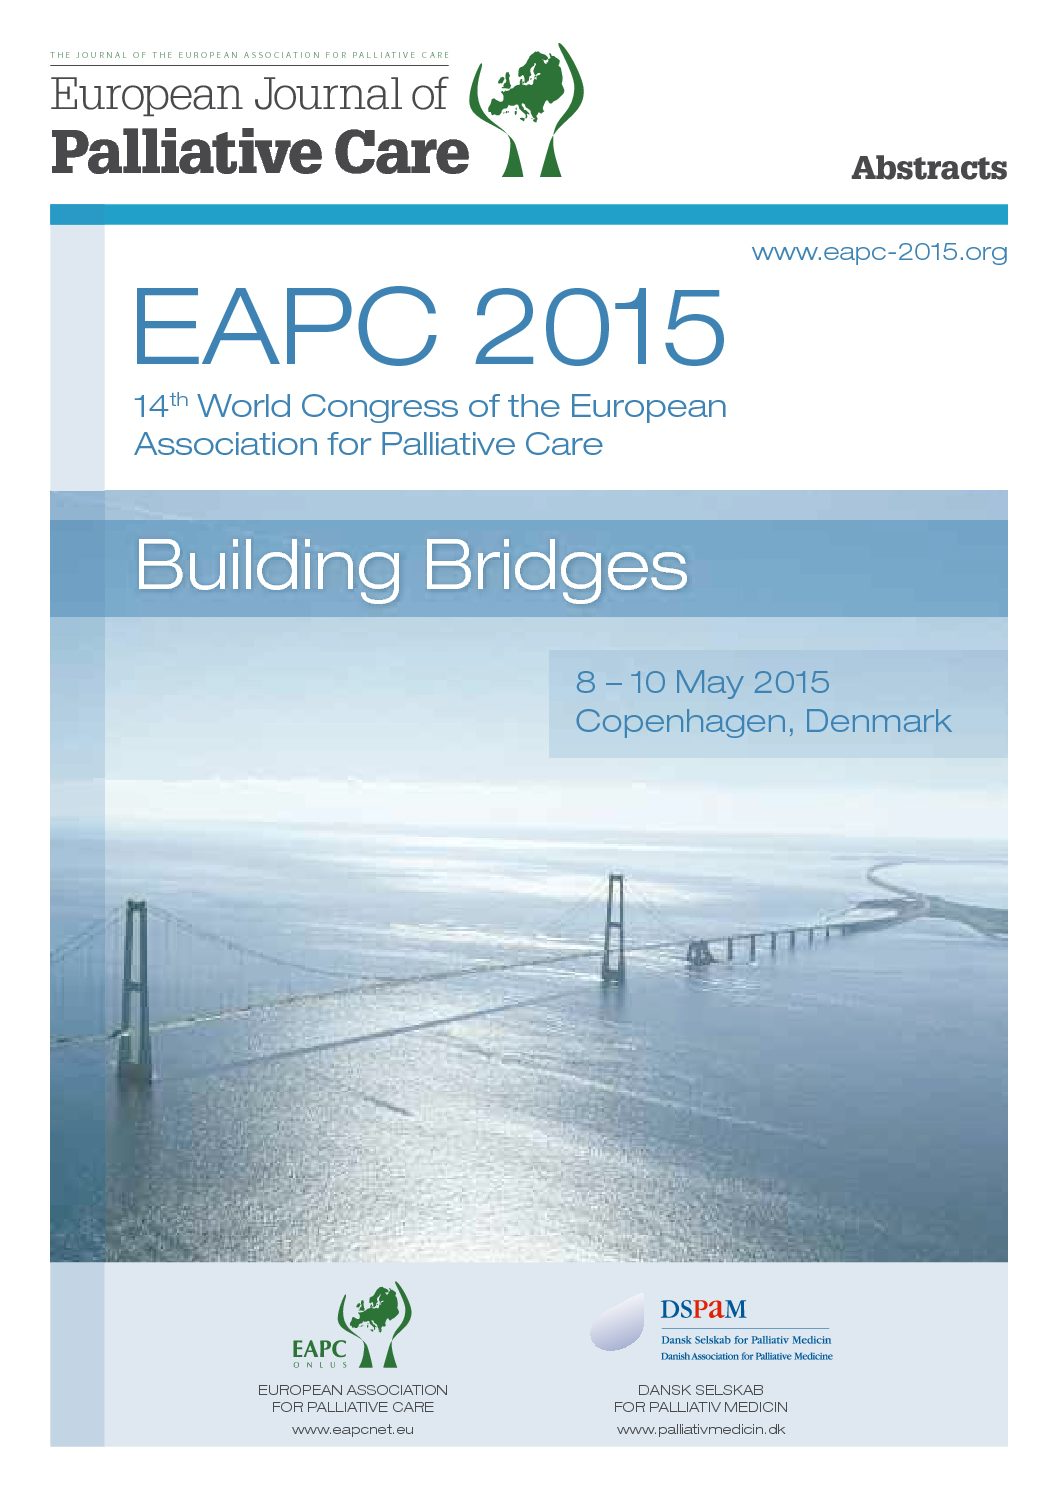 EAPC 2015 Abstract Book in PDF